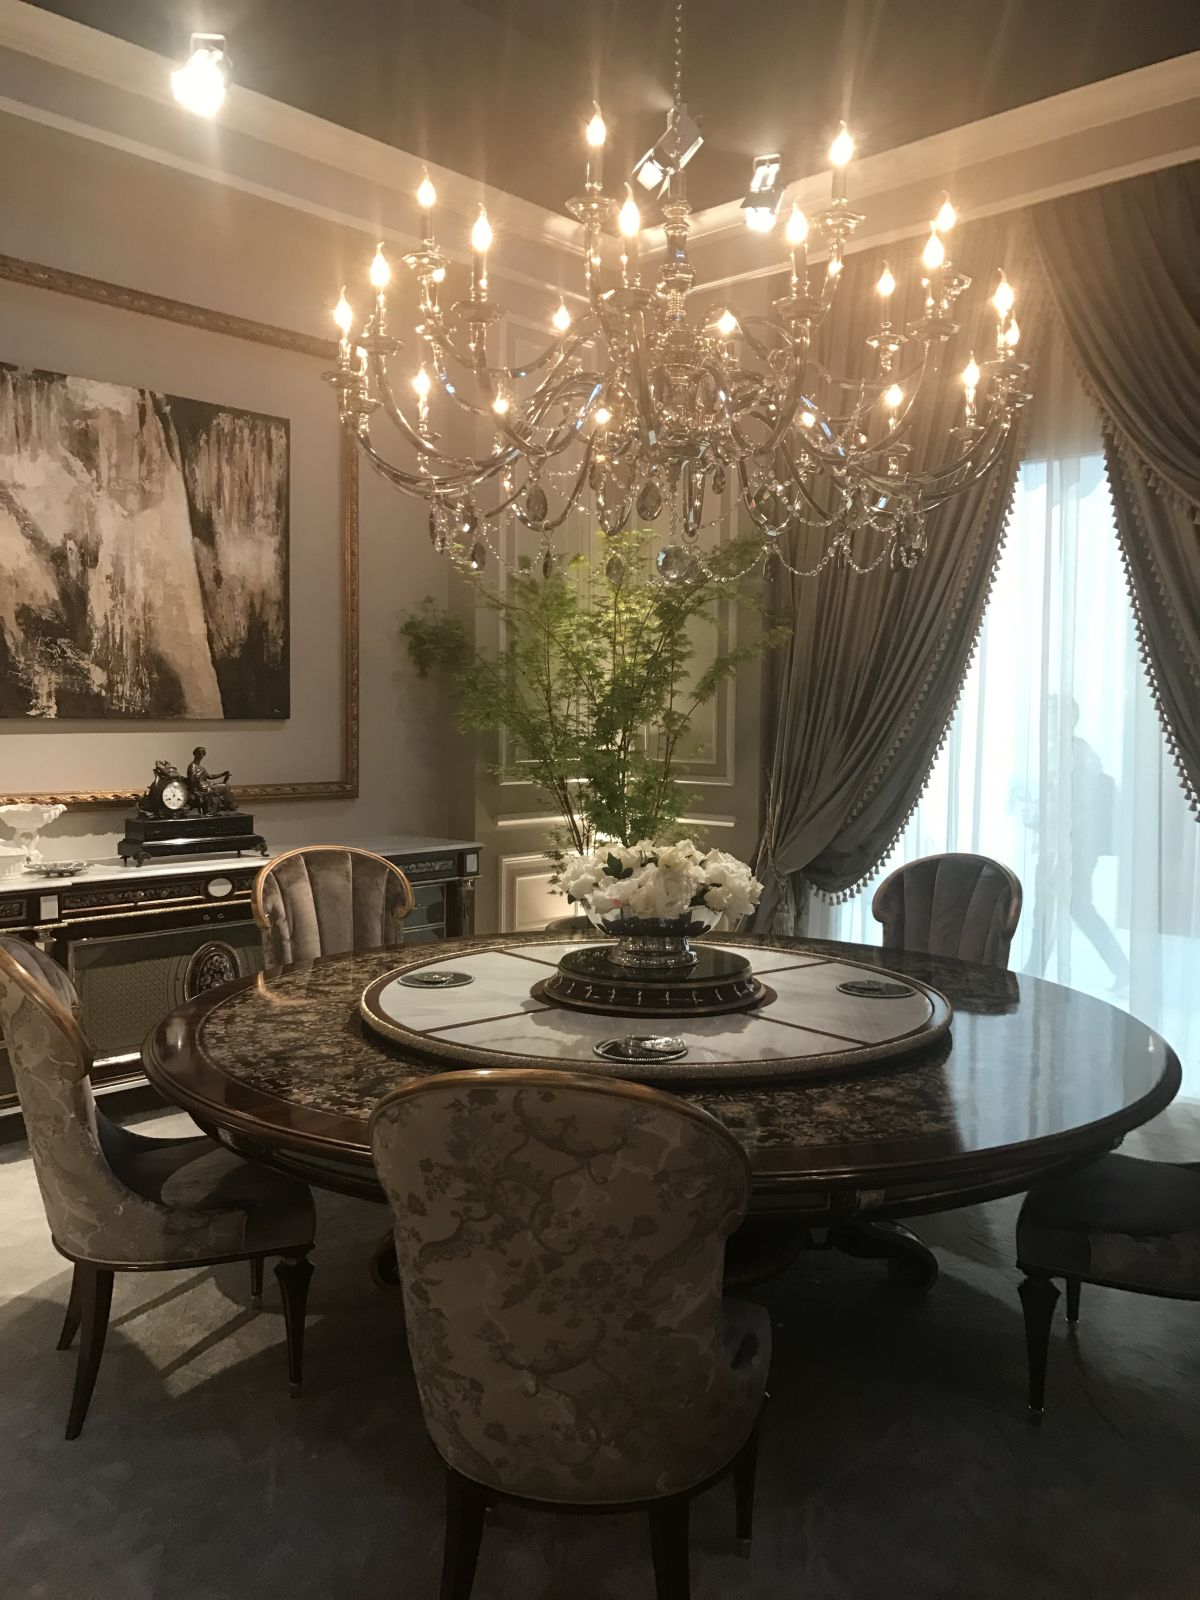 This Baroque dining room does not have an overabundance of gilding.